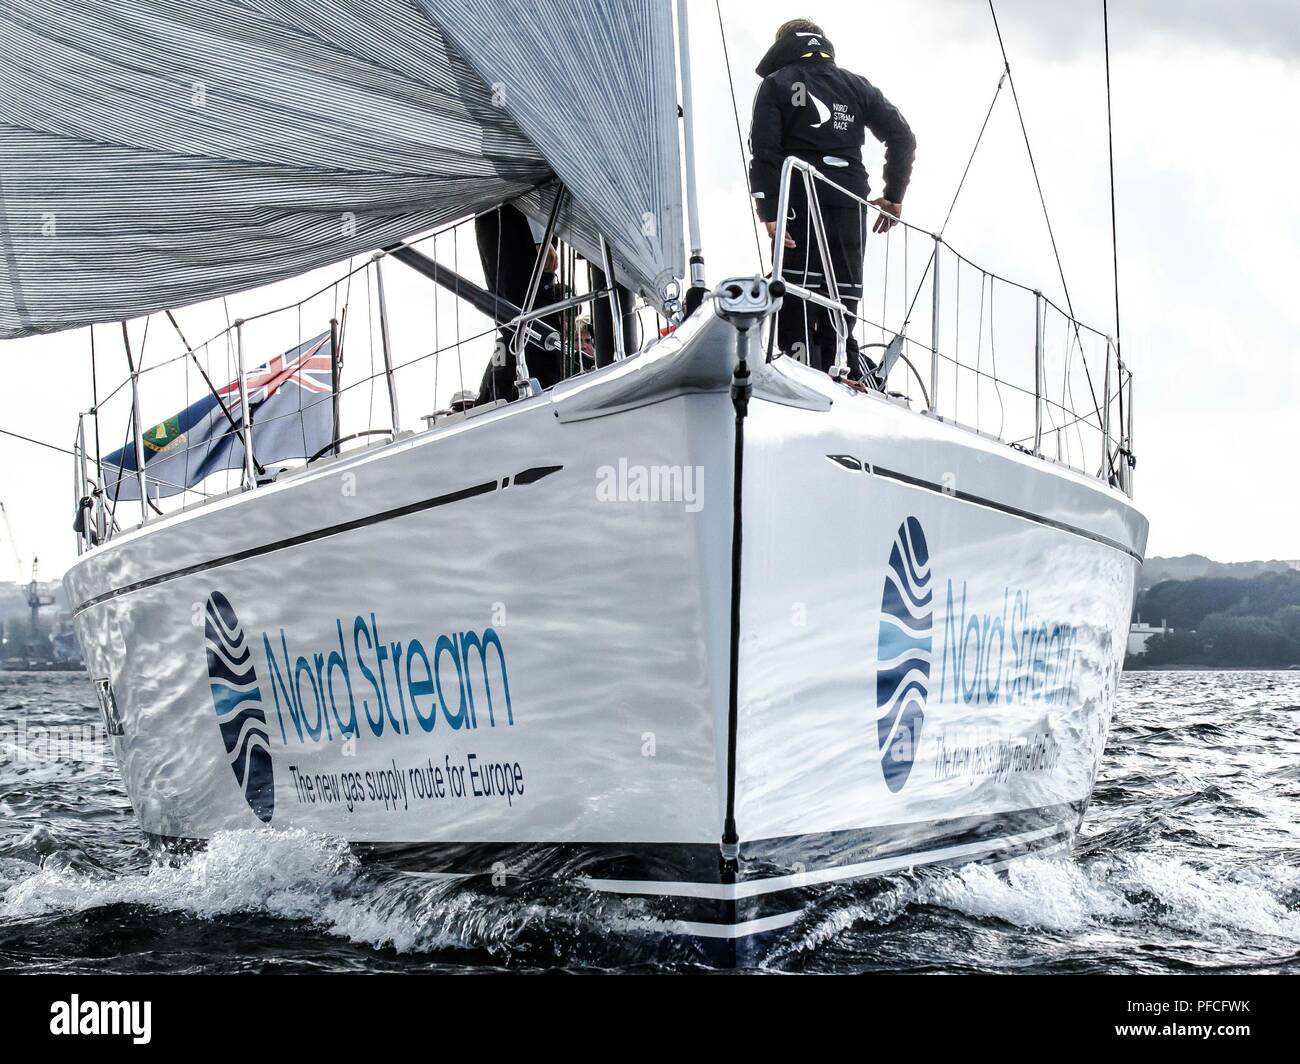 Nord Stream Race Stock Photos & Nord Stream Race Stock Images - Alamy